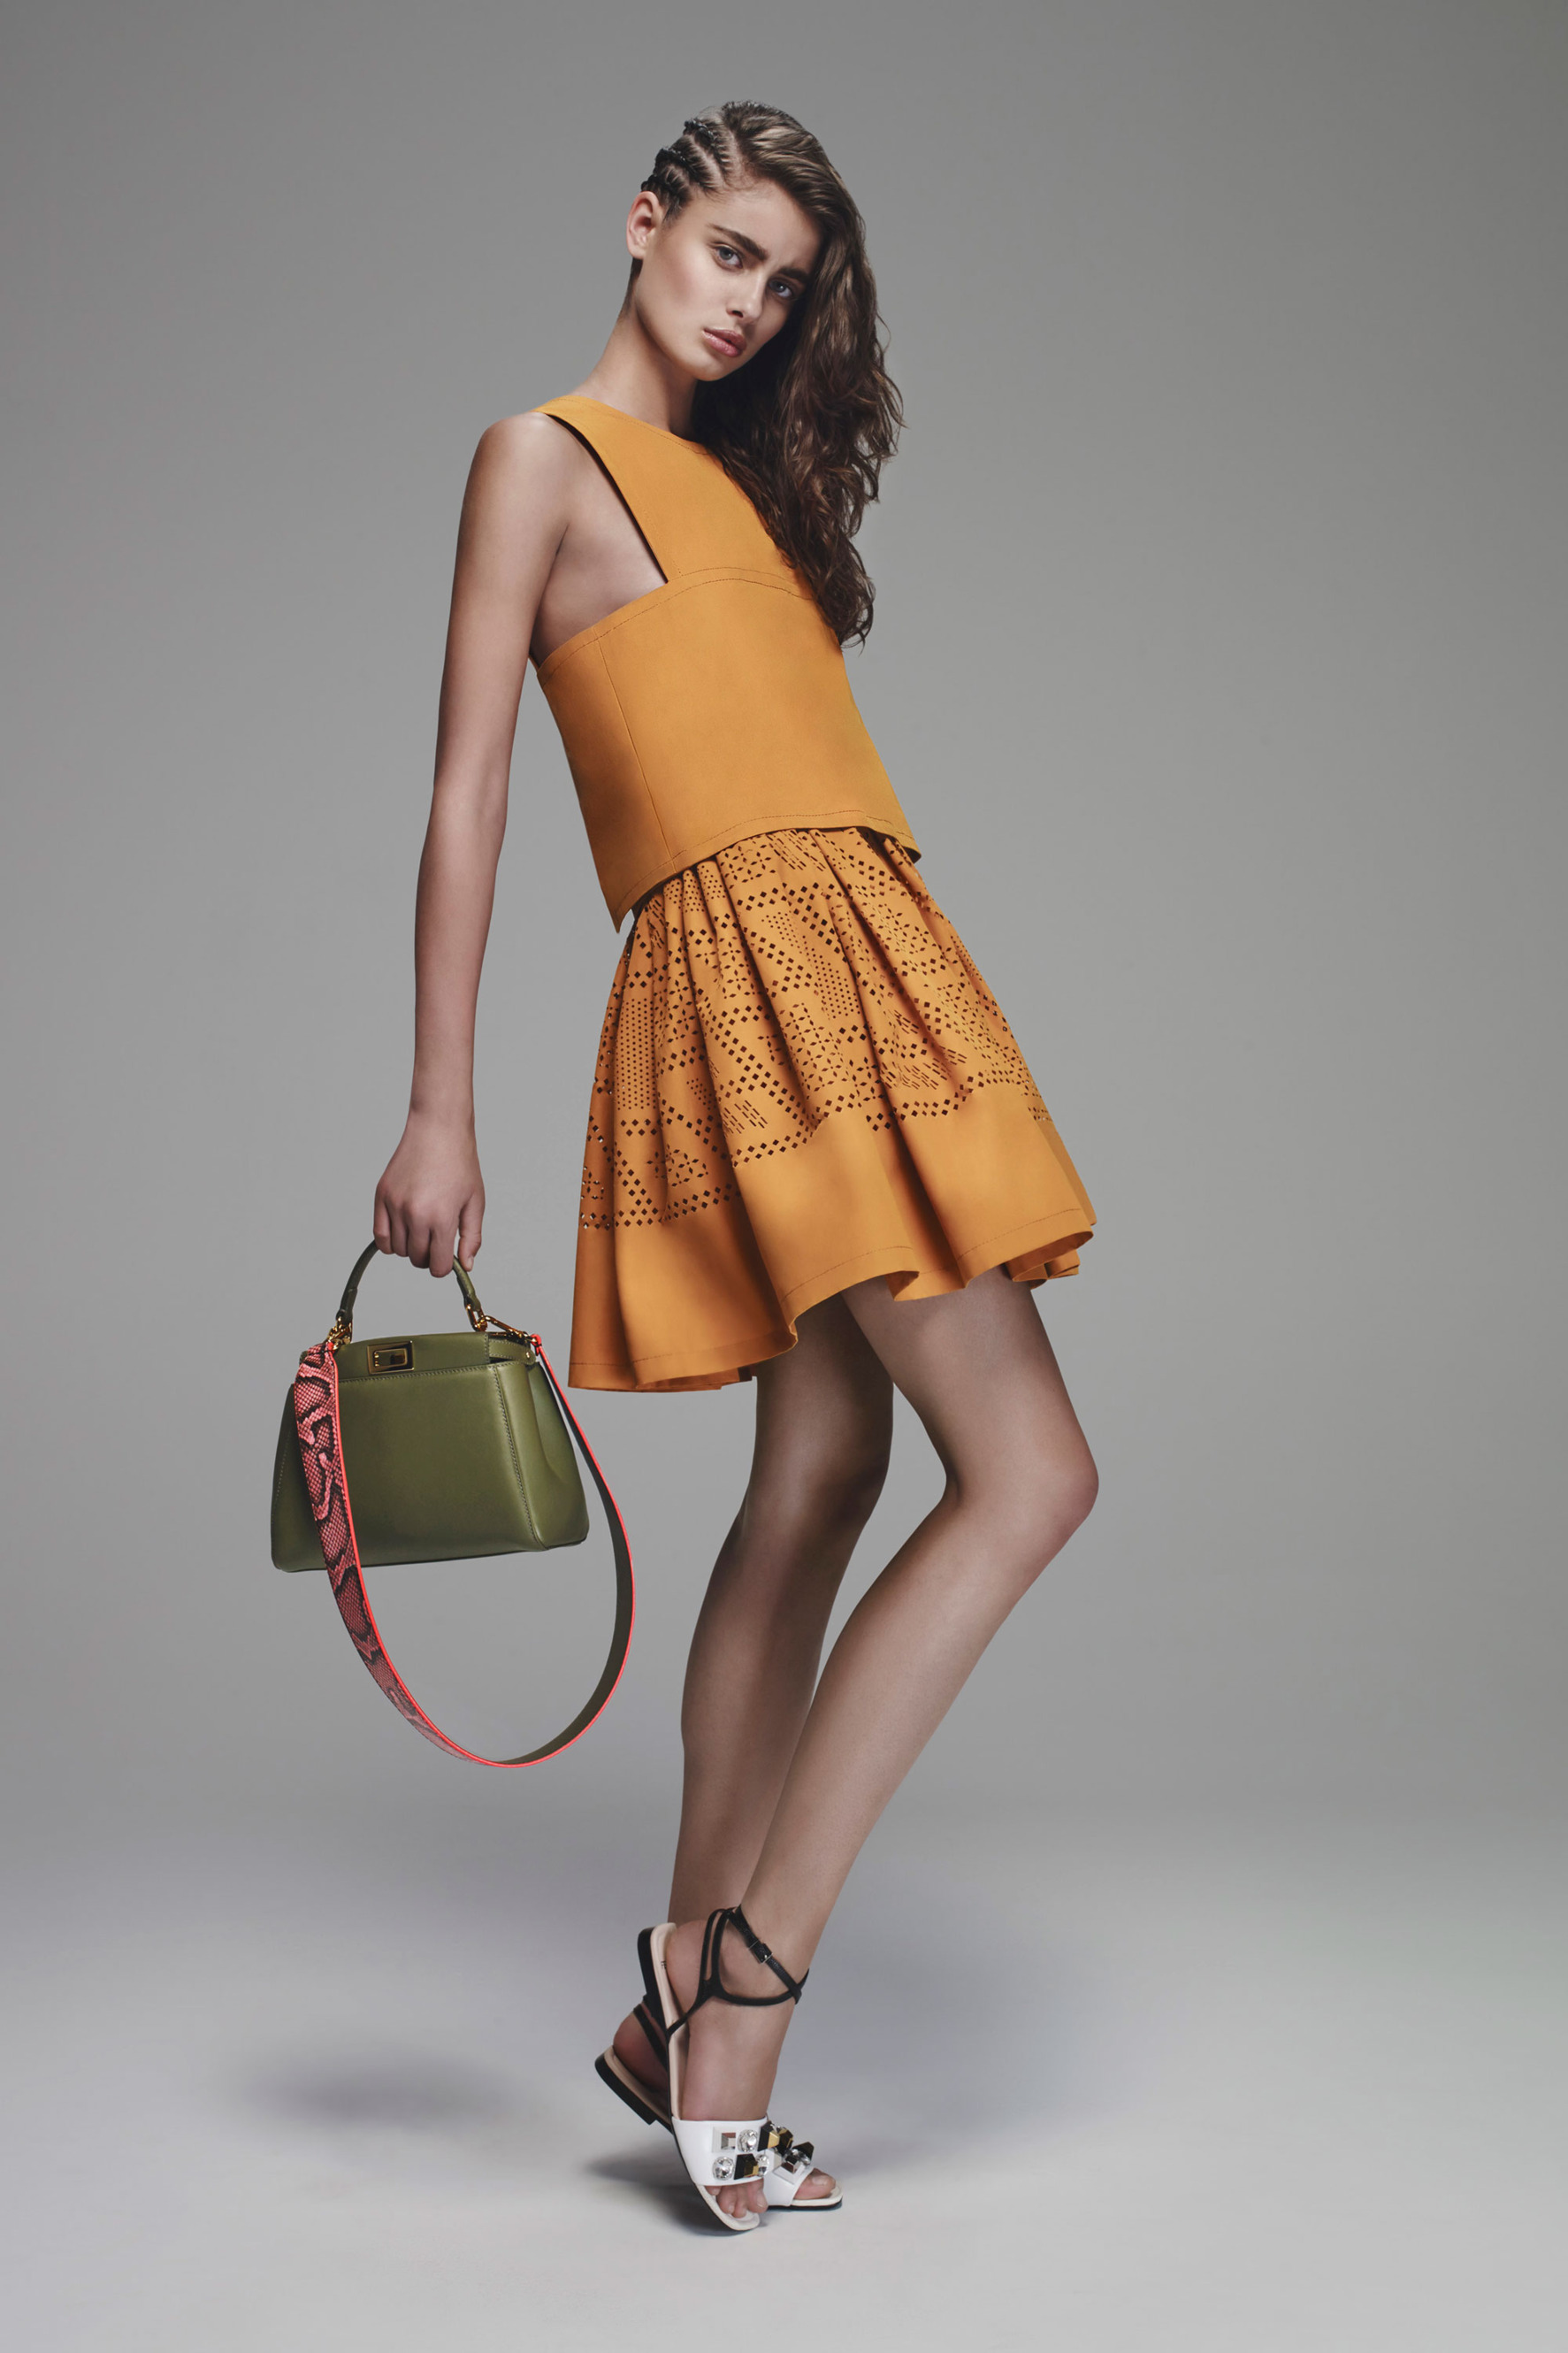 Fendi 2016 resort collection